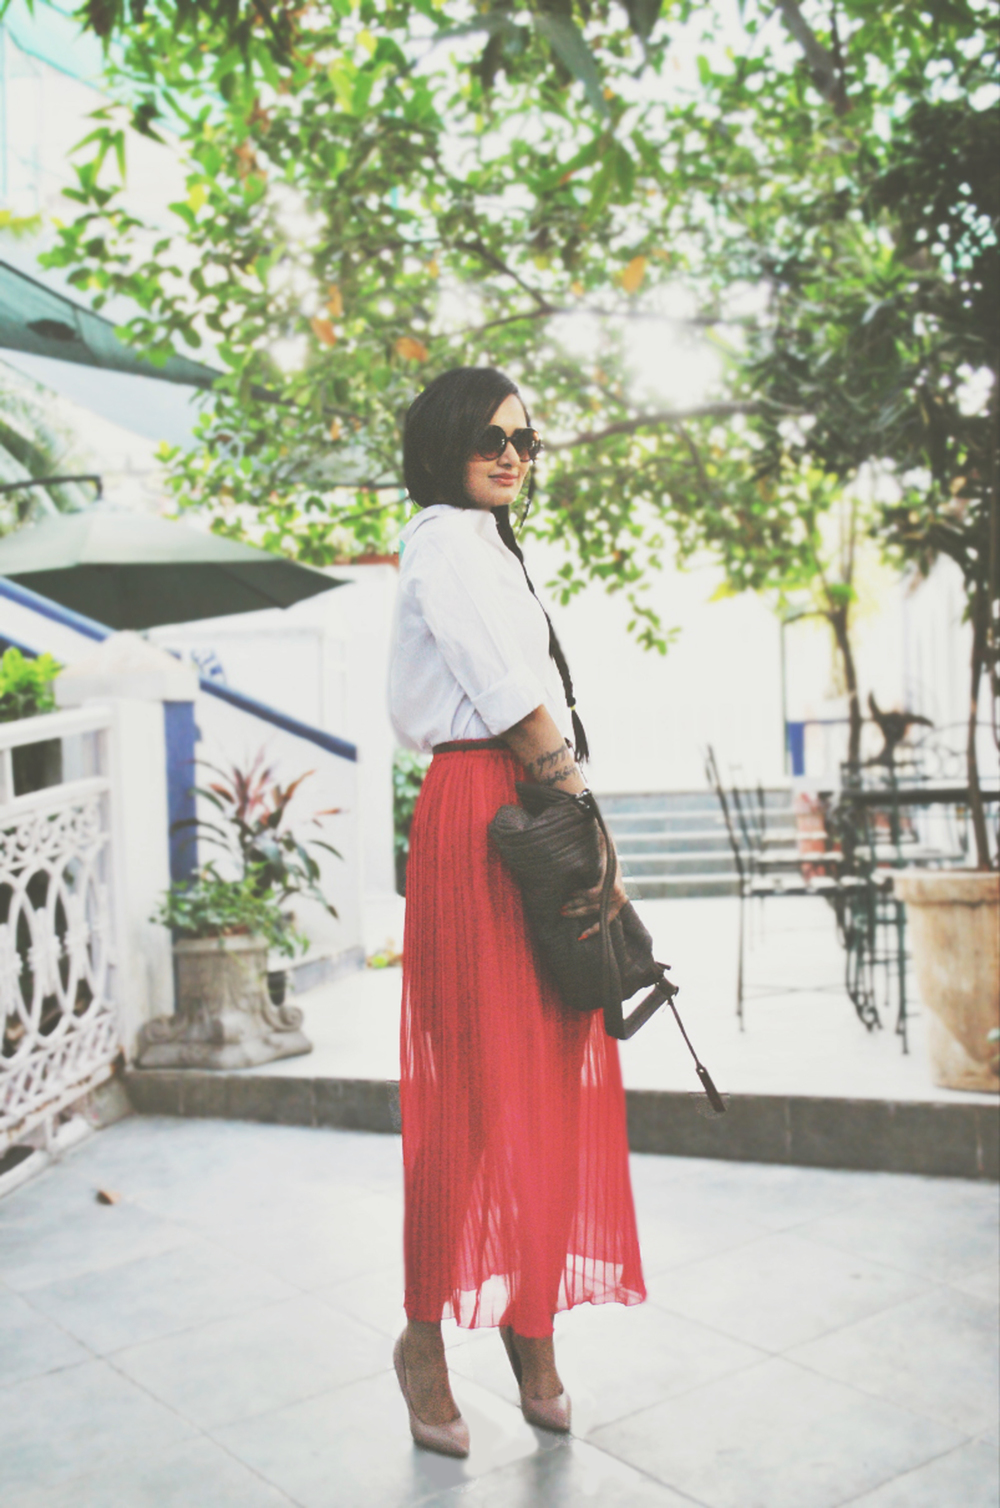 The Chic Armoire by Nidhi Kunder | Circadian Rhythm 6